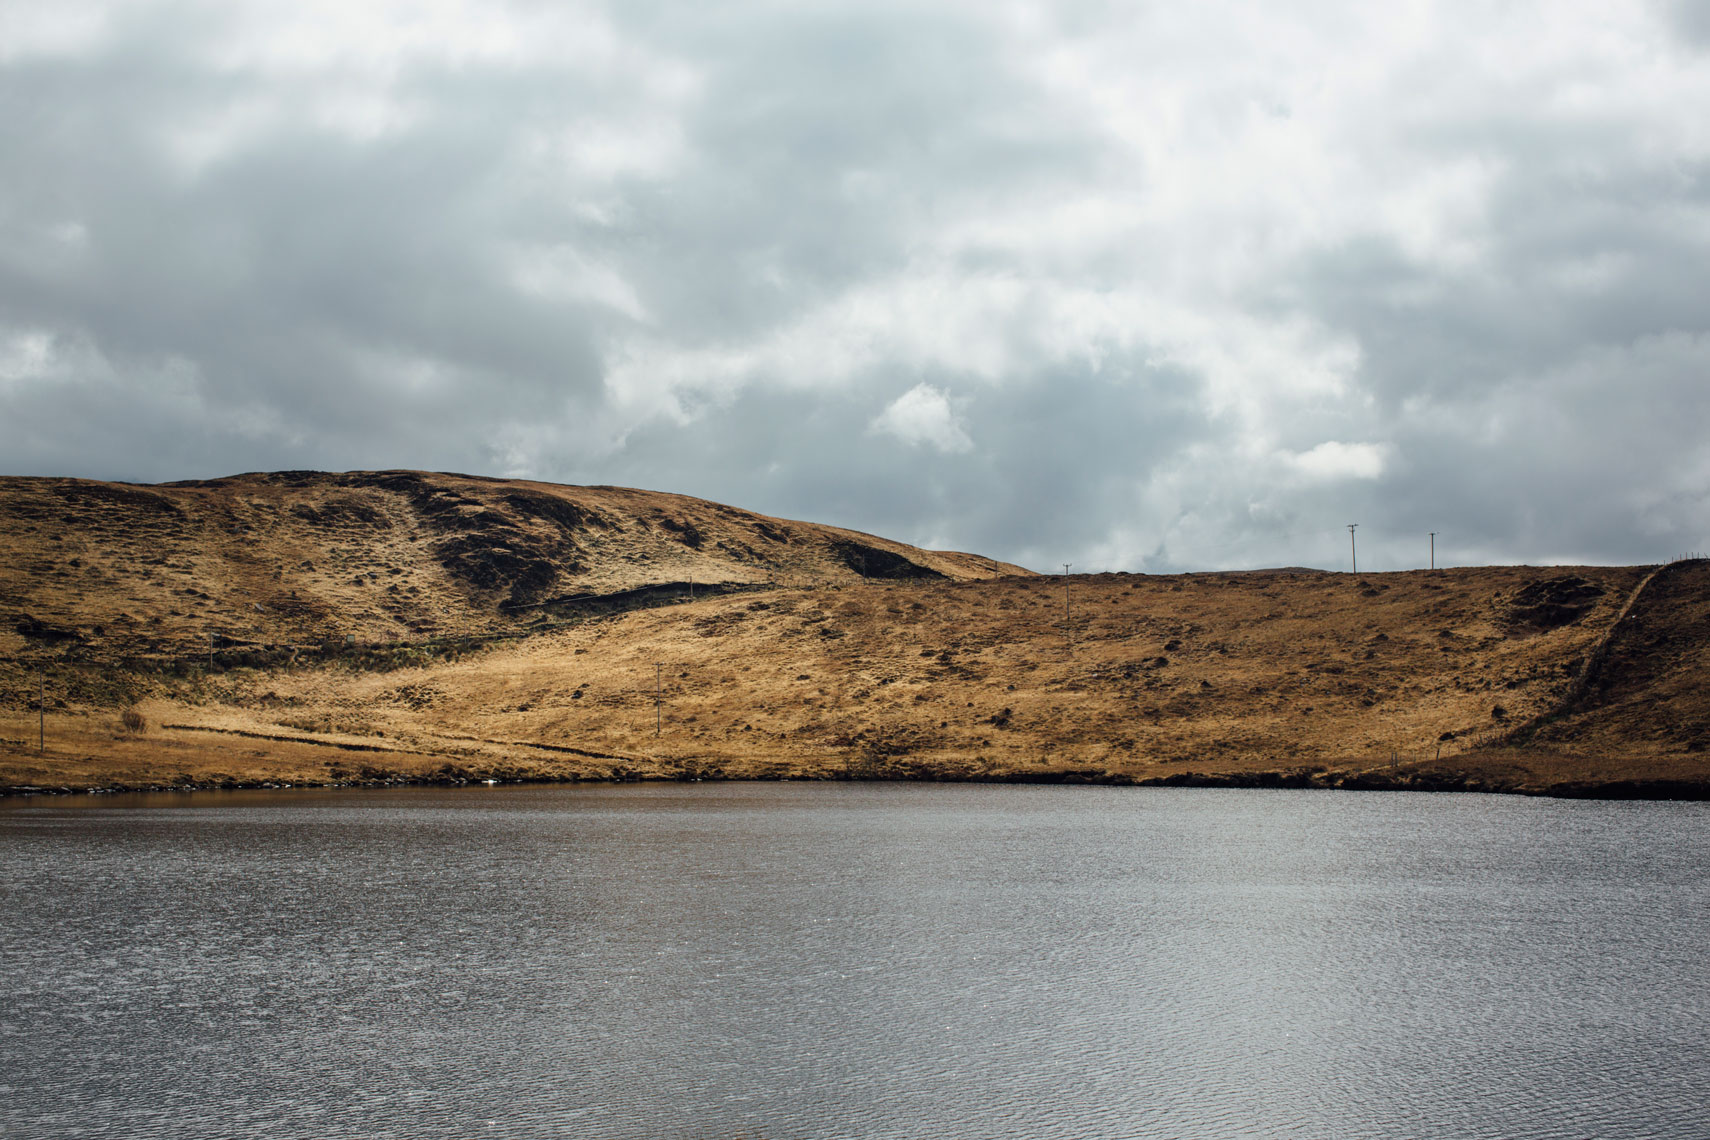 a sequence of photos that tell a story: a barren beautiful kerry landscape